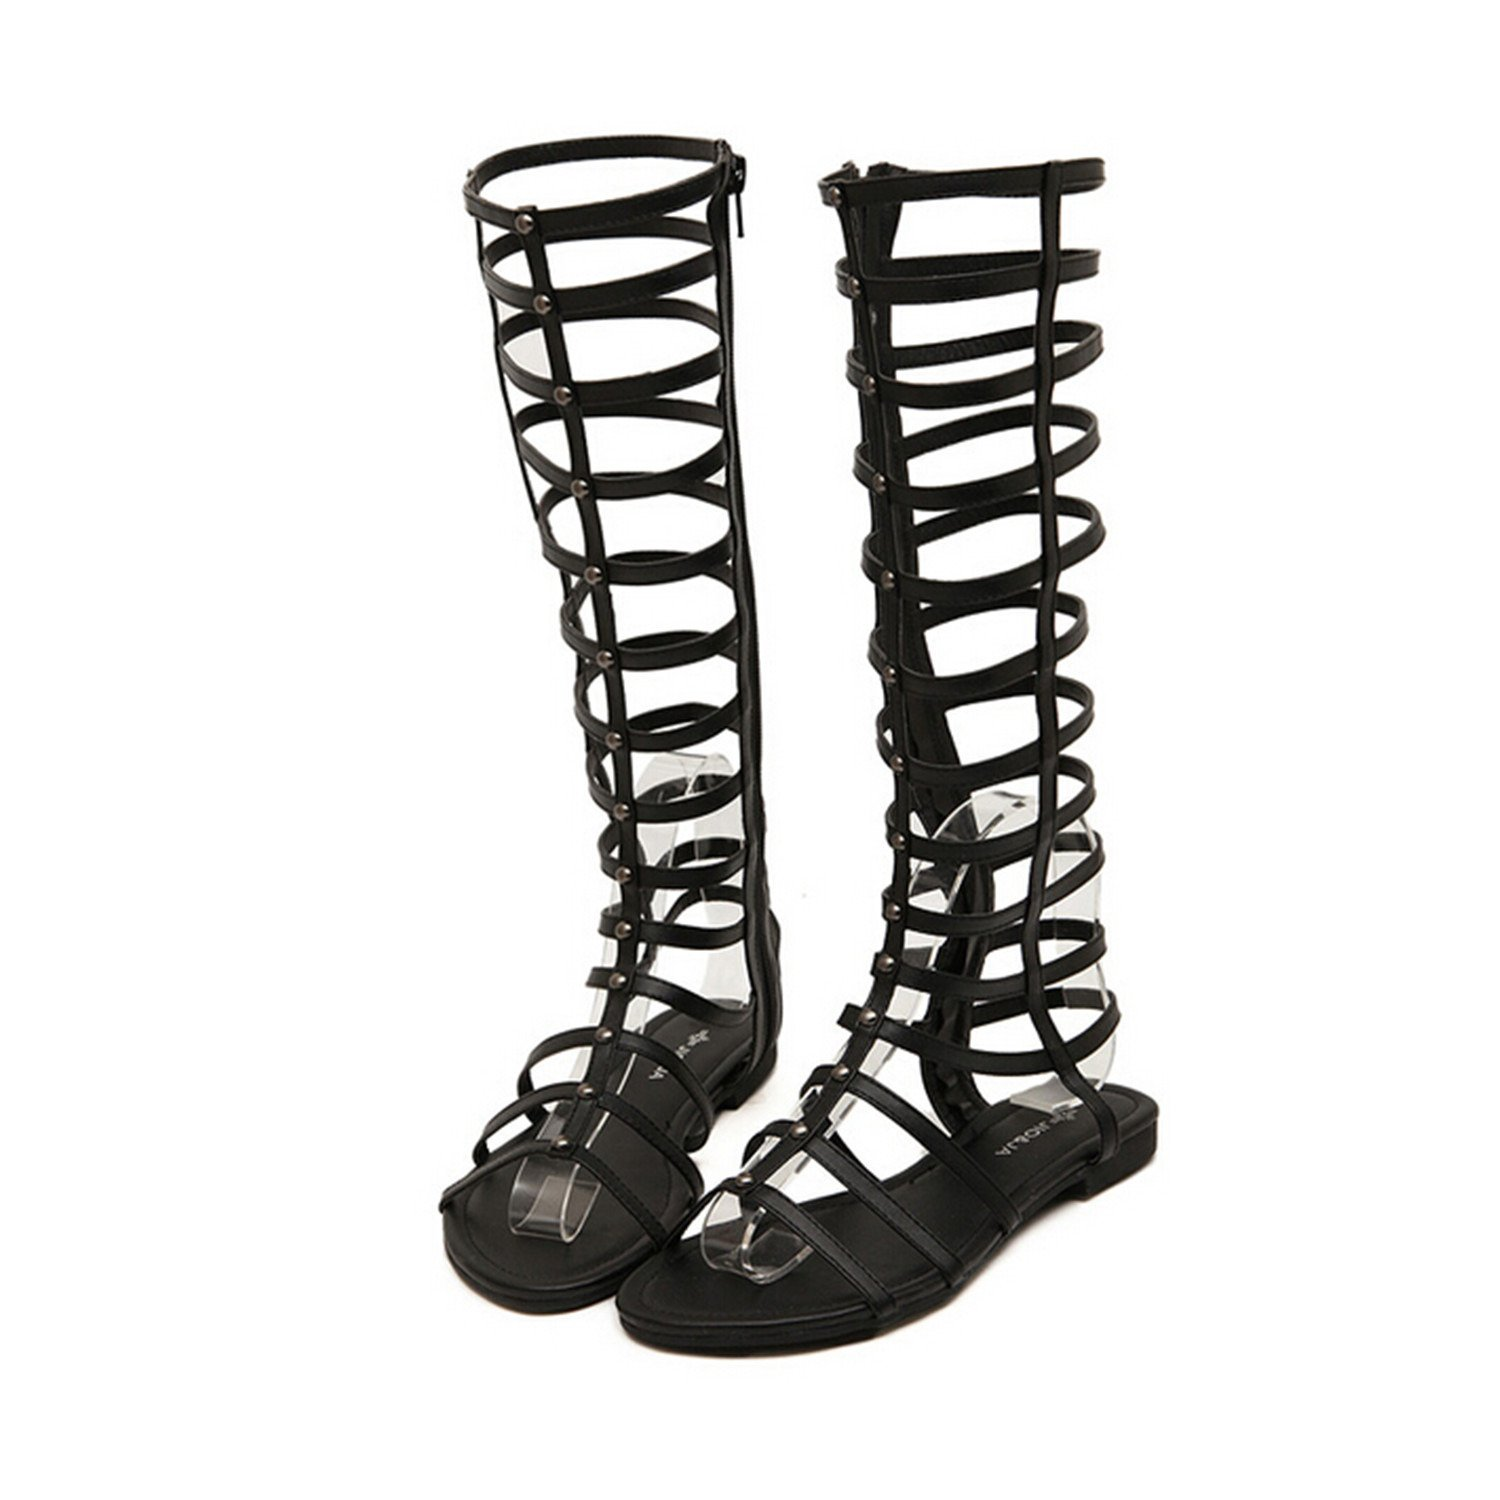 2f38ac0a22515 Women's Cut Out Roman Gladiator Sandals Flat Knee High Boots Strappy ...